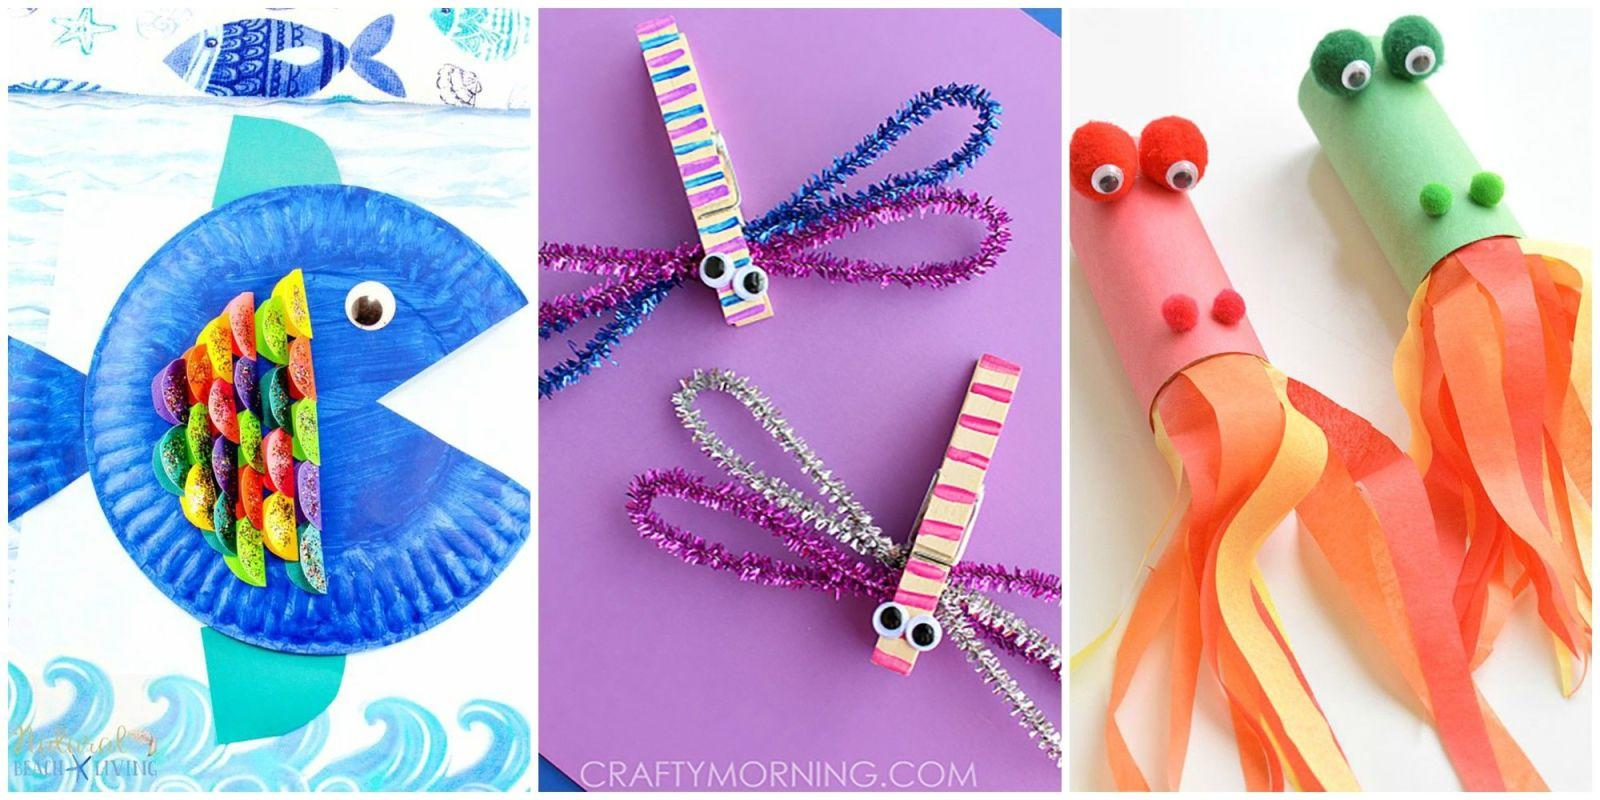 diy craft ideas for kids 10 easy crafts for that will brighten up rainy days 6457